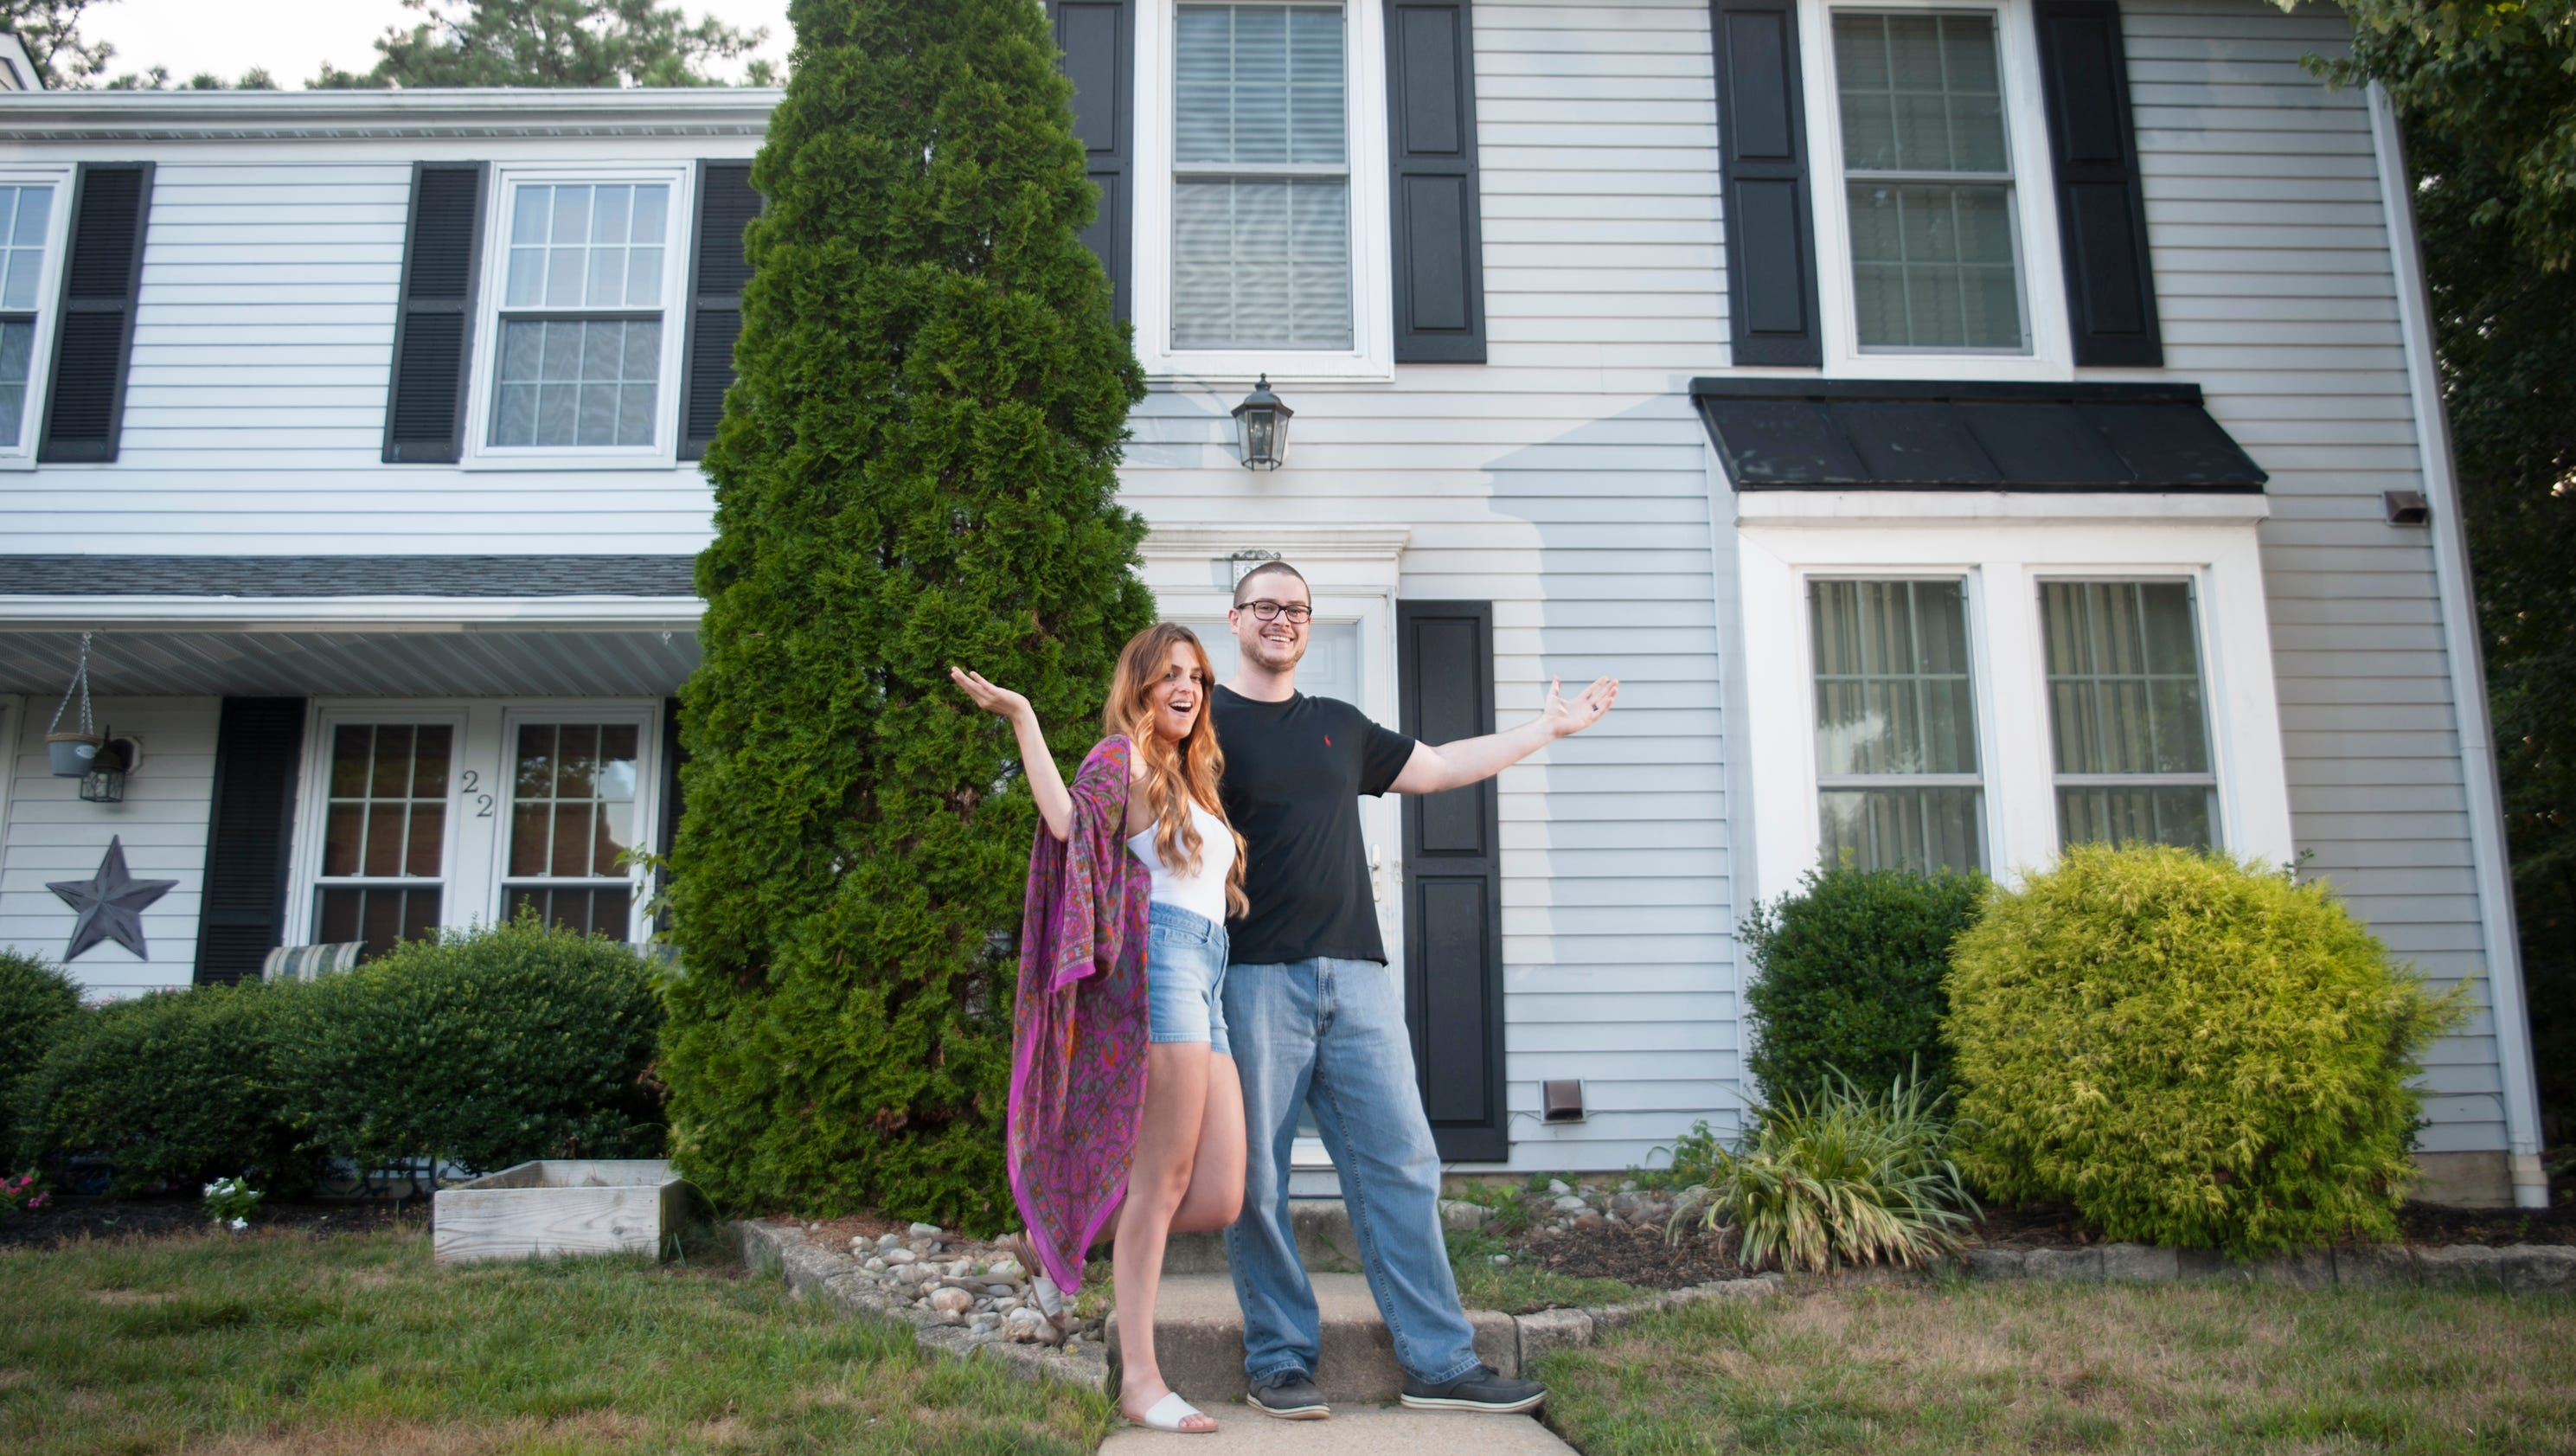 Marlton Couple Appears On Hgtv 39 S 39 House Hunters 39